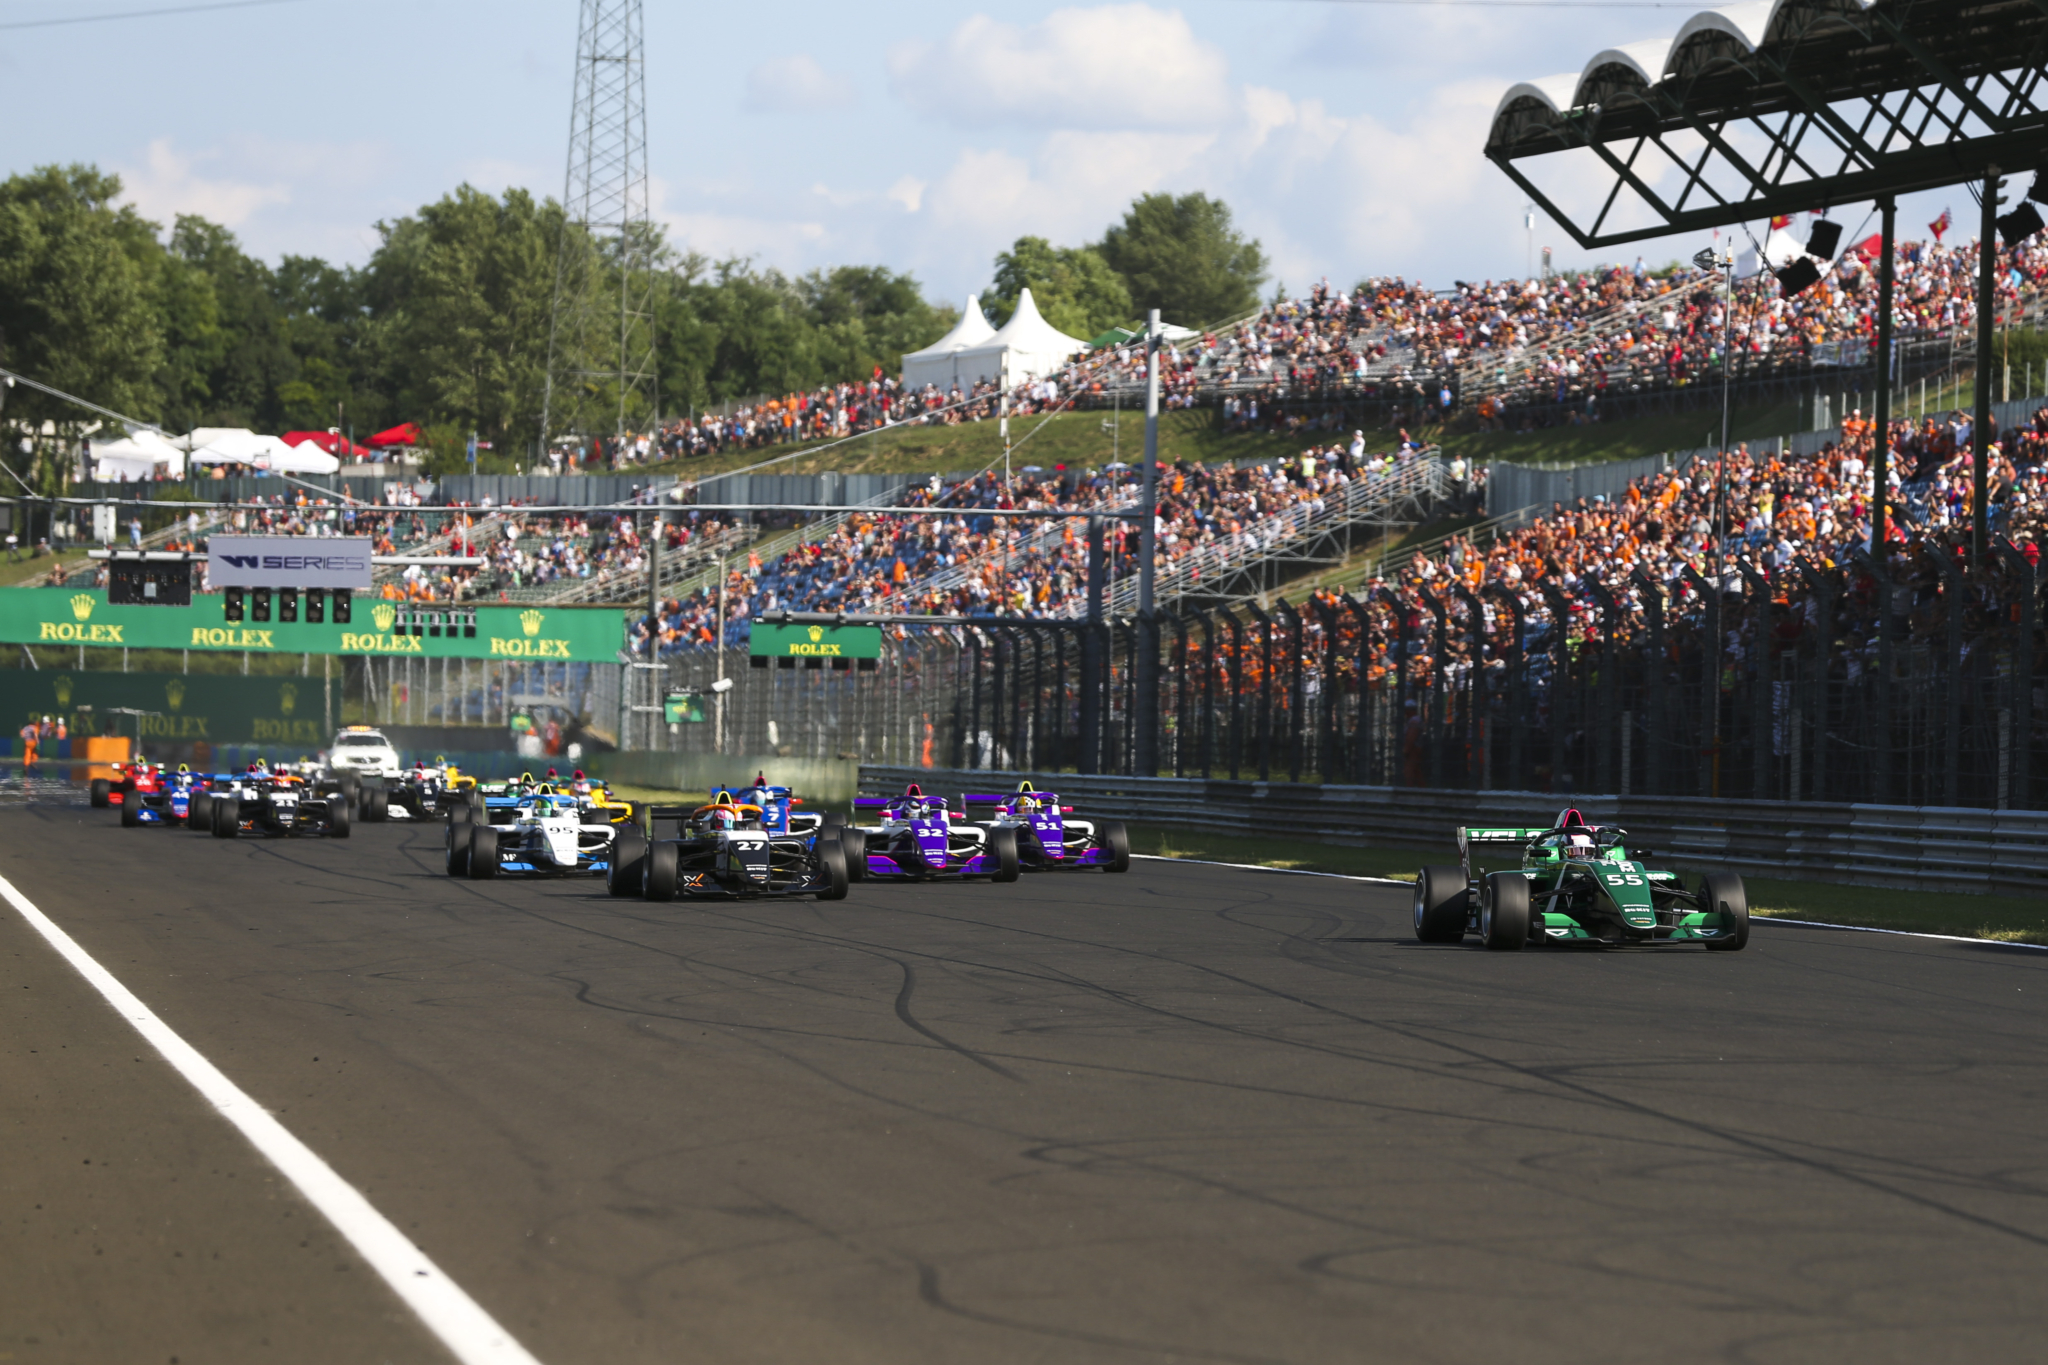 Hankook and W Series enter second half of the season with Formula 1